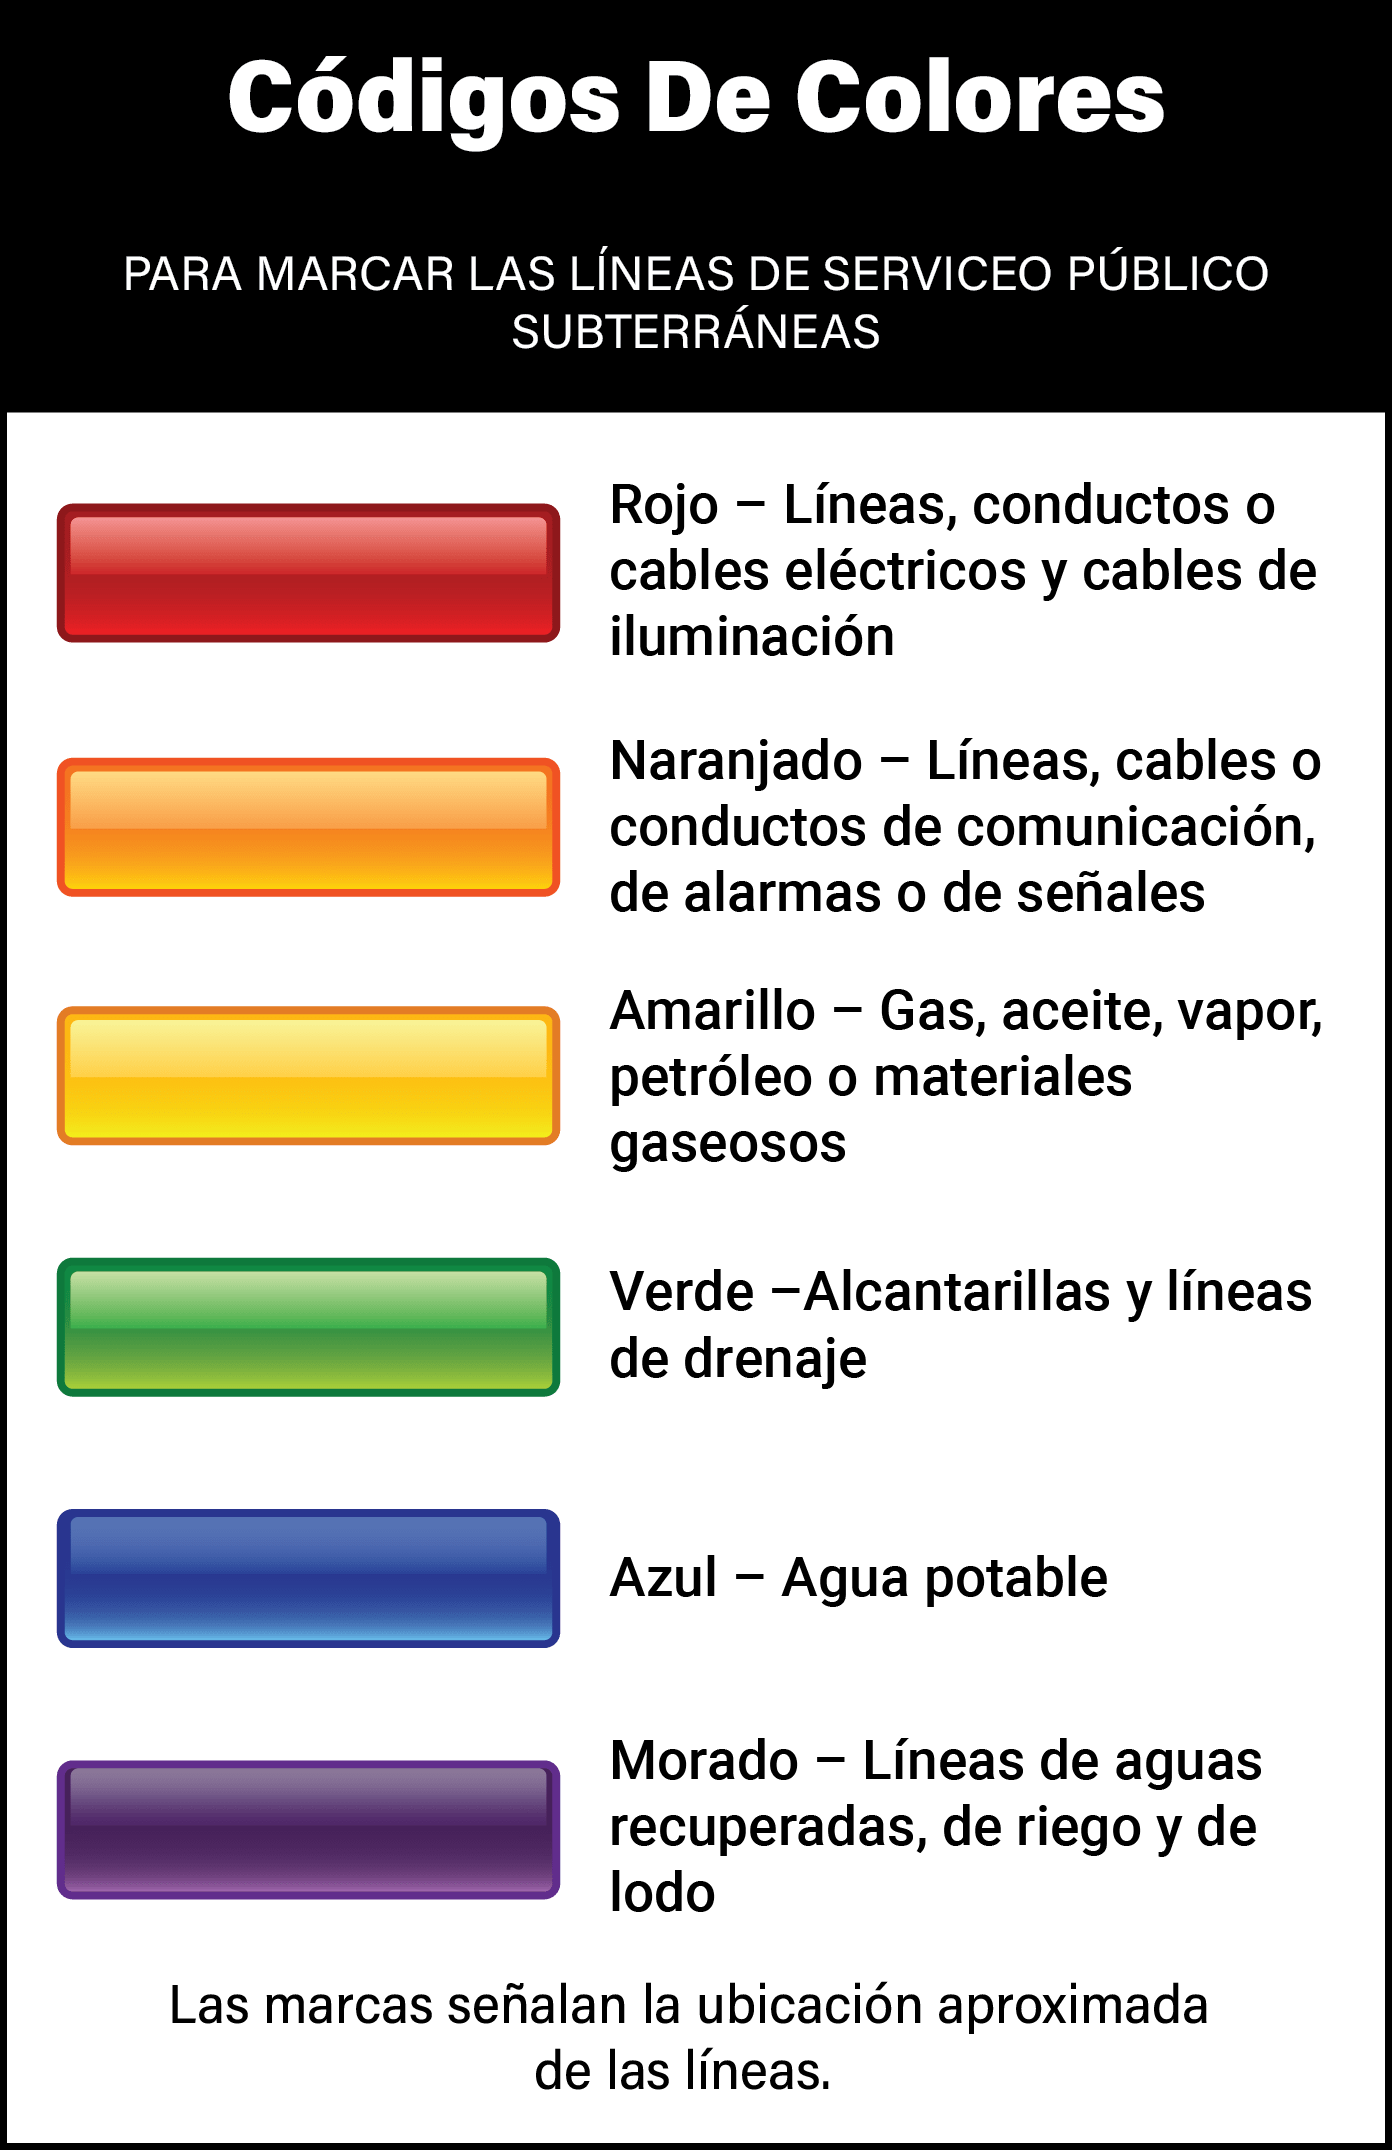 ccc-sp.png